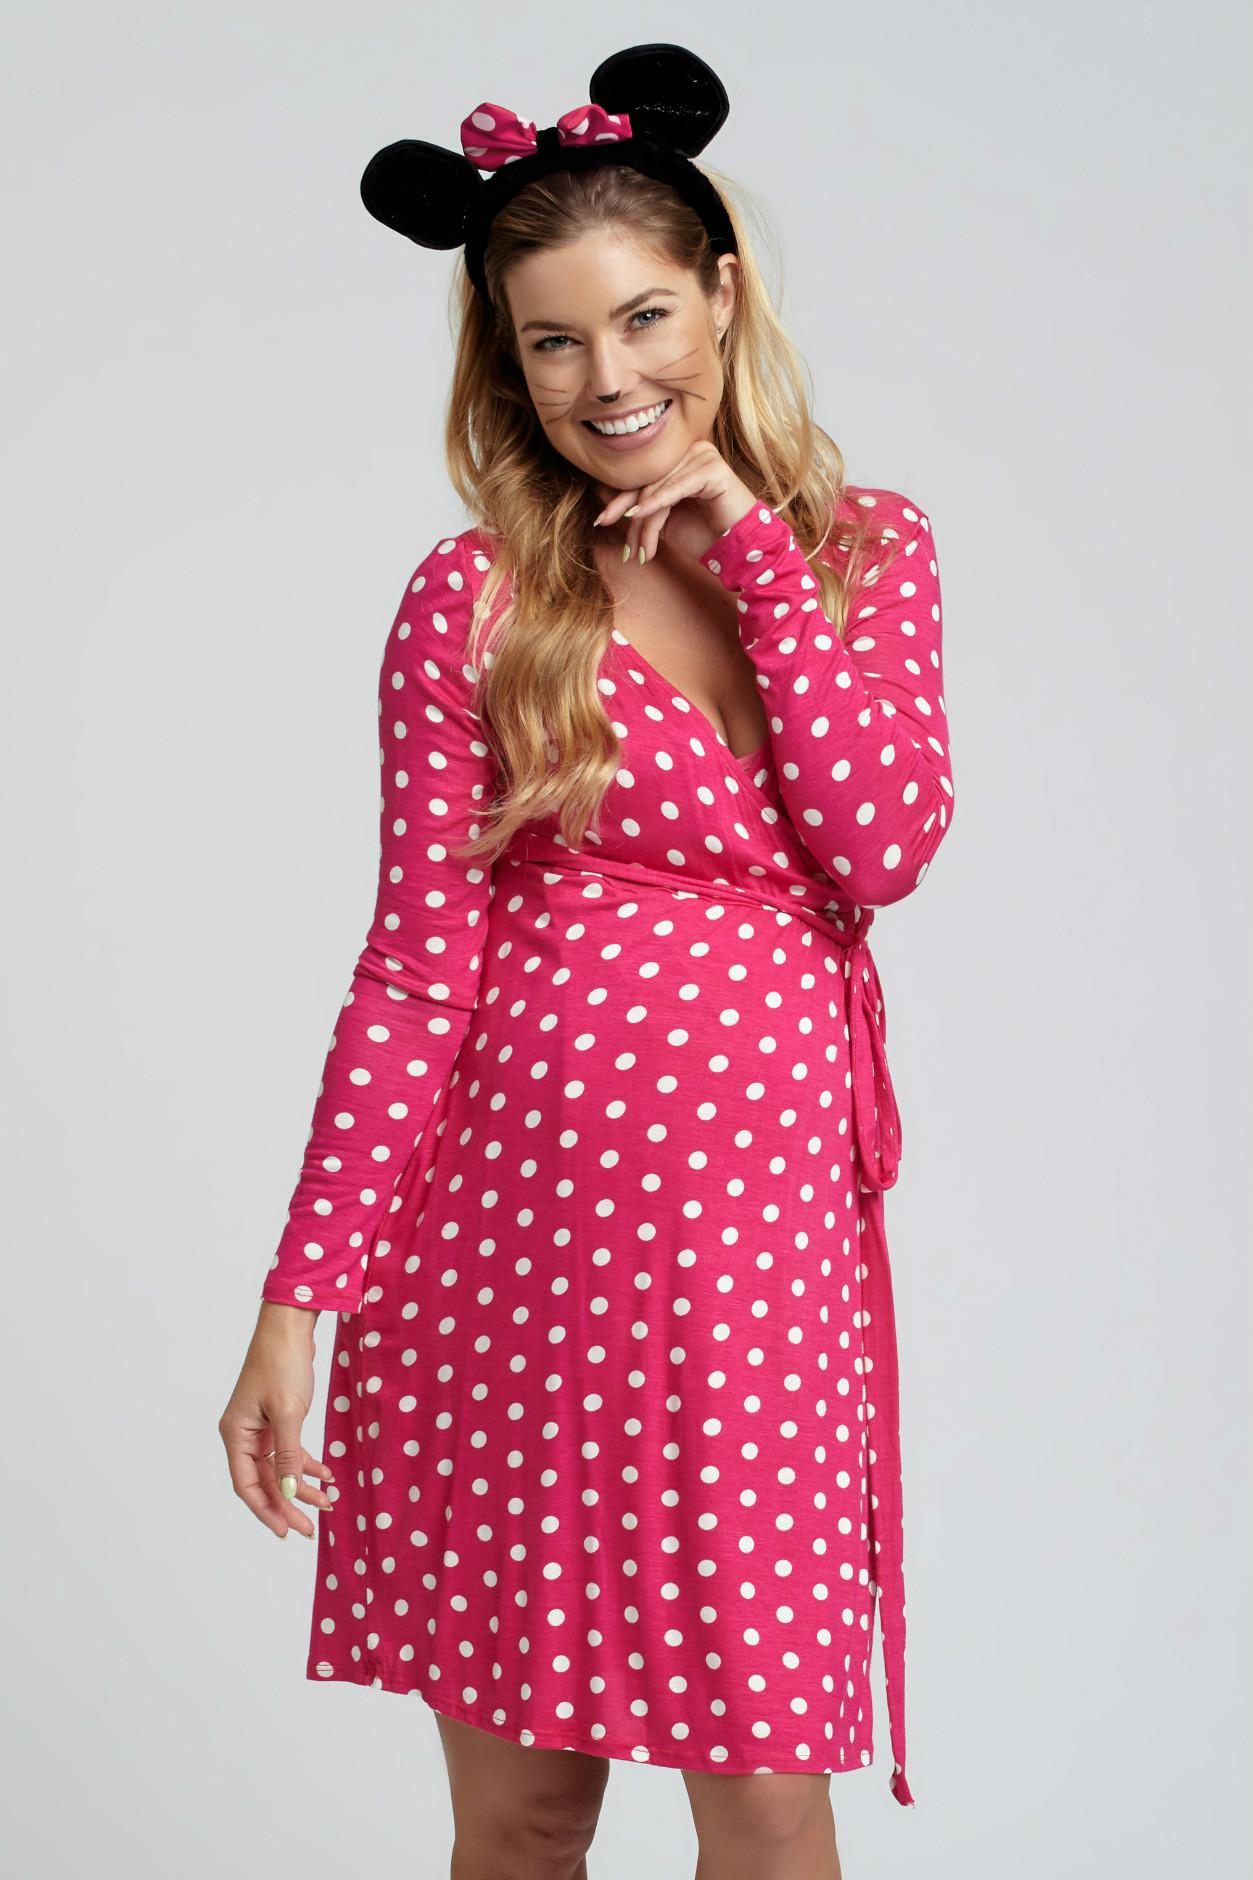 Polka dot maternity dresses 2017 black blue red pink pink polka dot maternity dress ombrellifo Choice Image